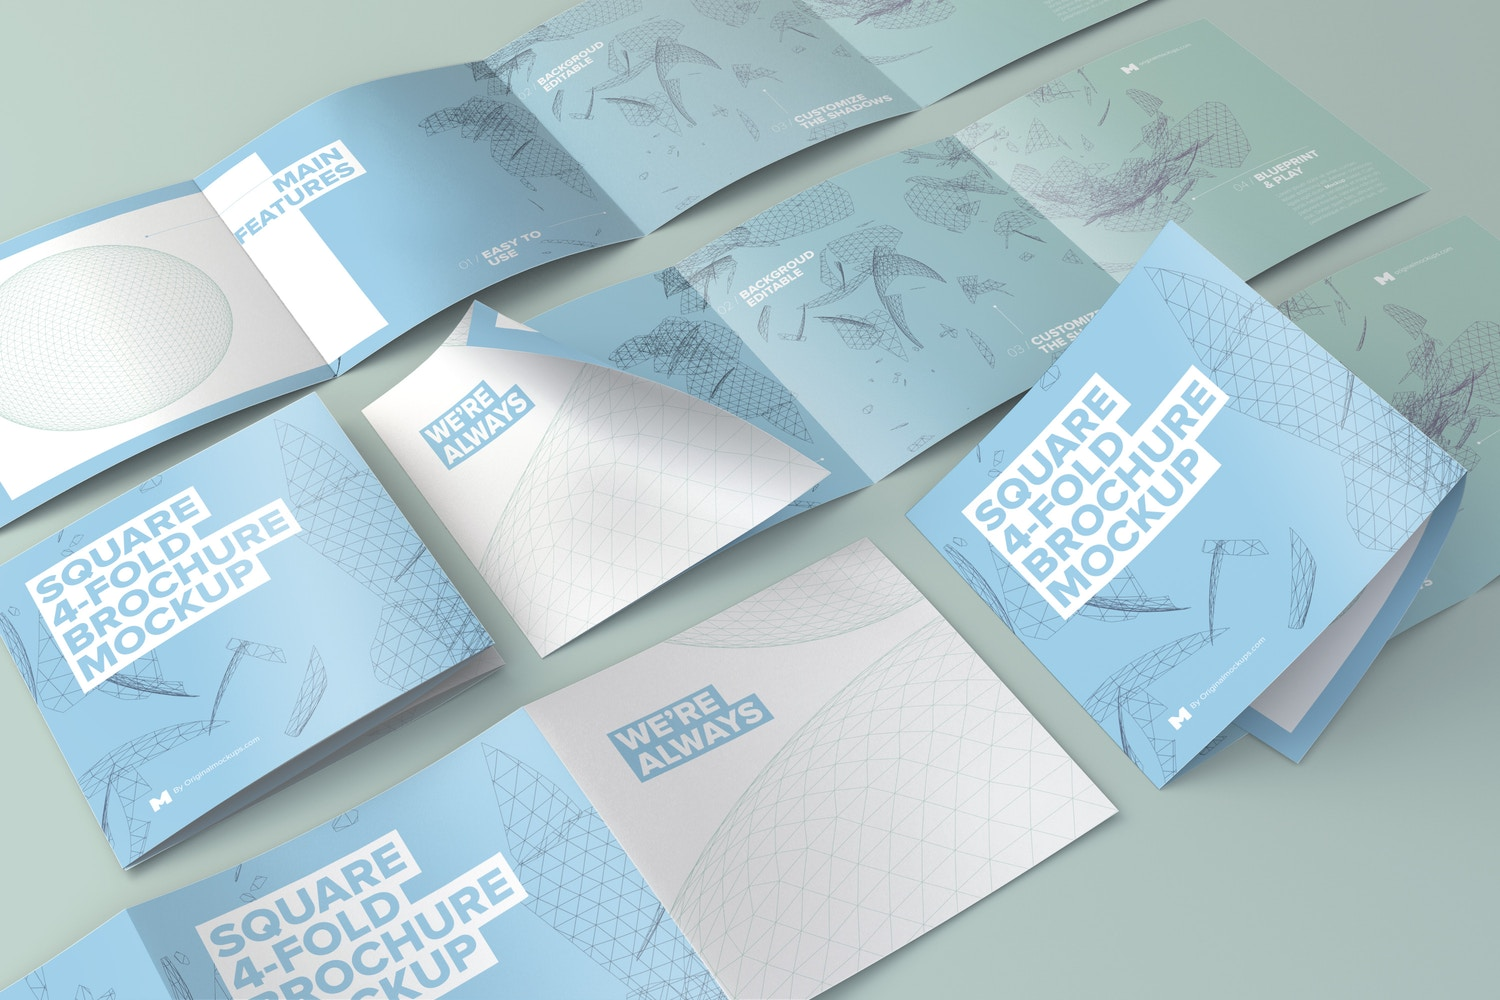 Square 4-Fold Brochure Grid Layout Mockup - Custom Background